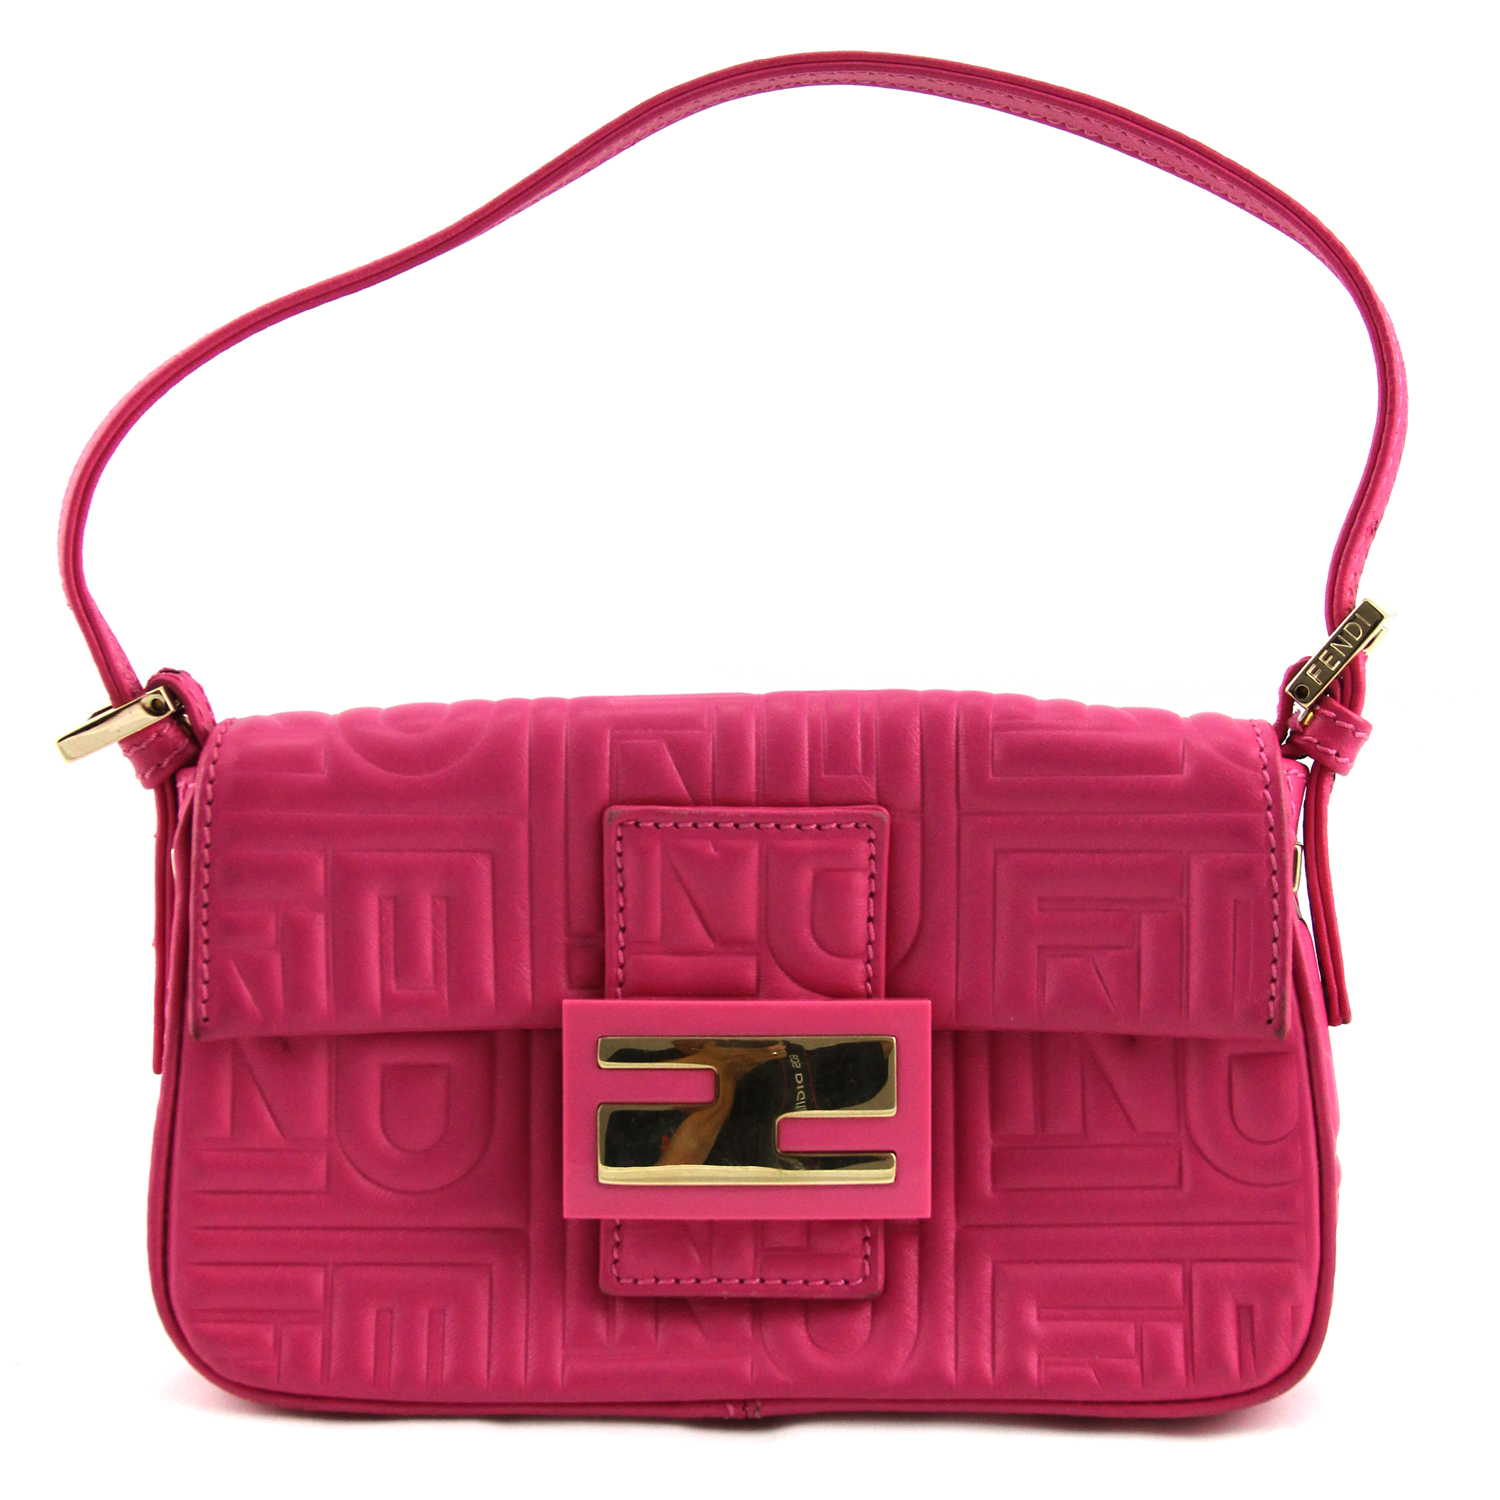 Fendi Pink Mini Baguette Bag Dreamlux Studio